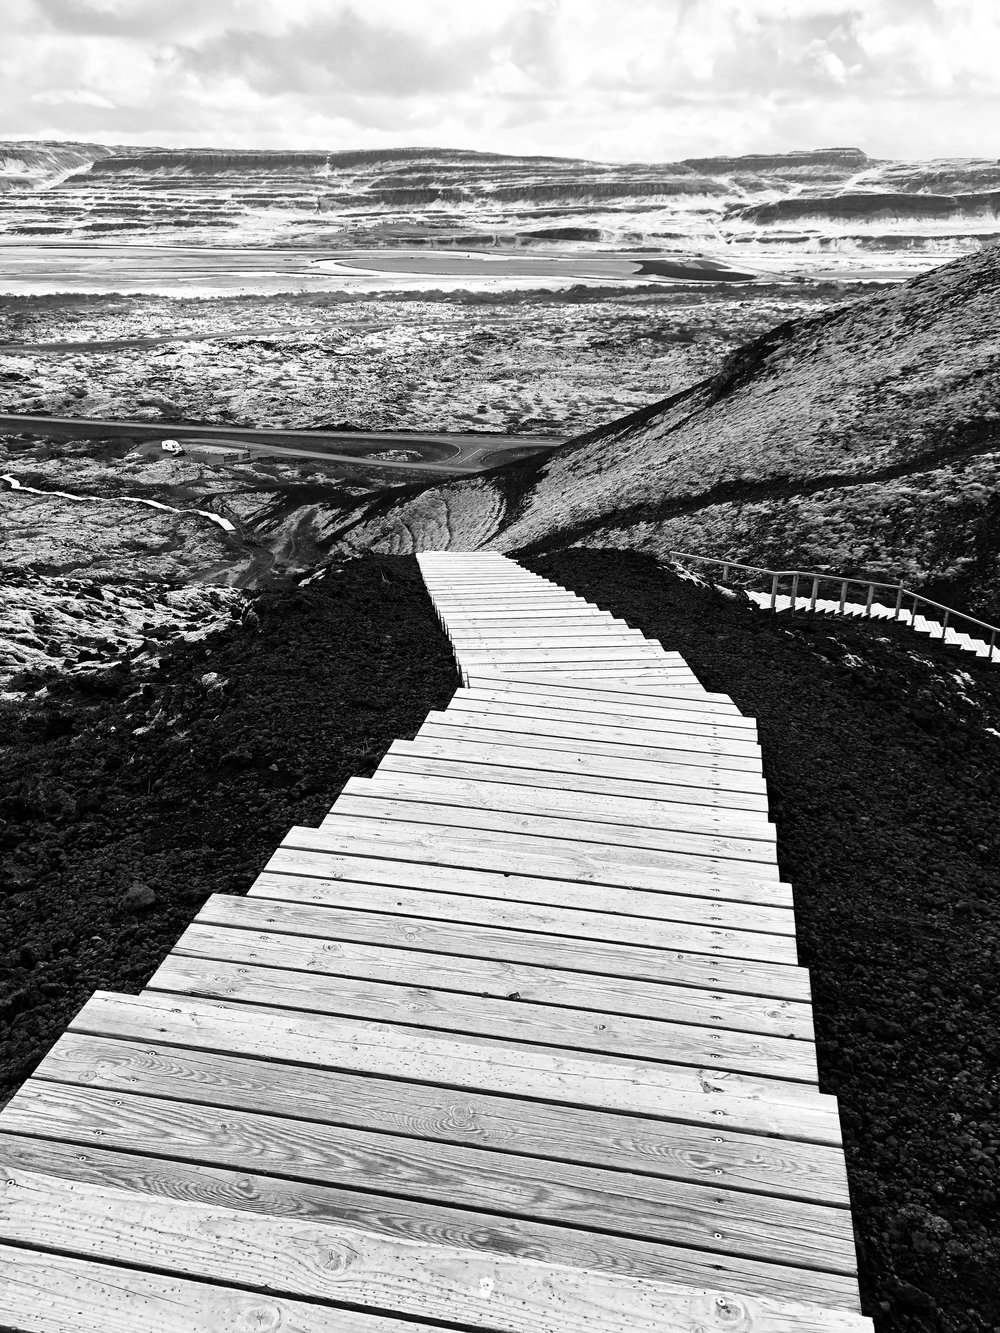 Stairway through cindercone, northern Iceland